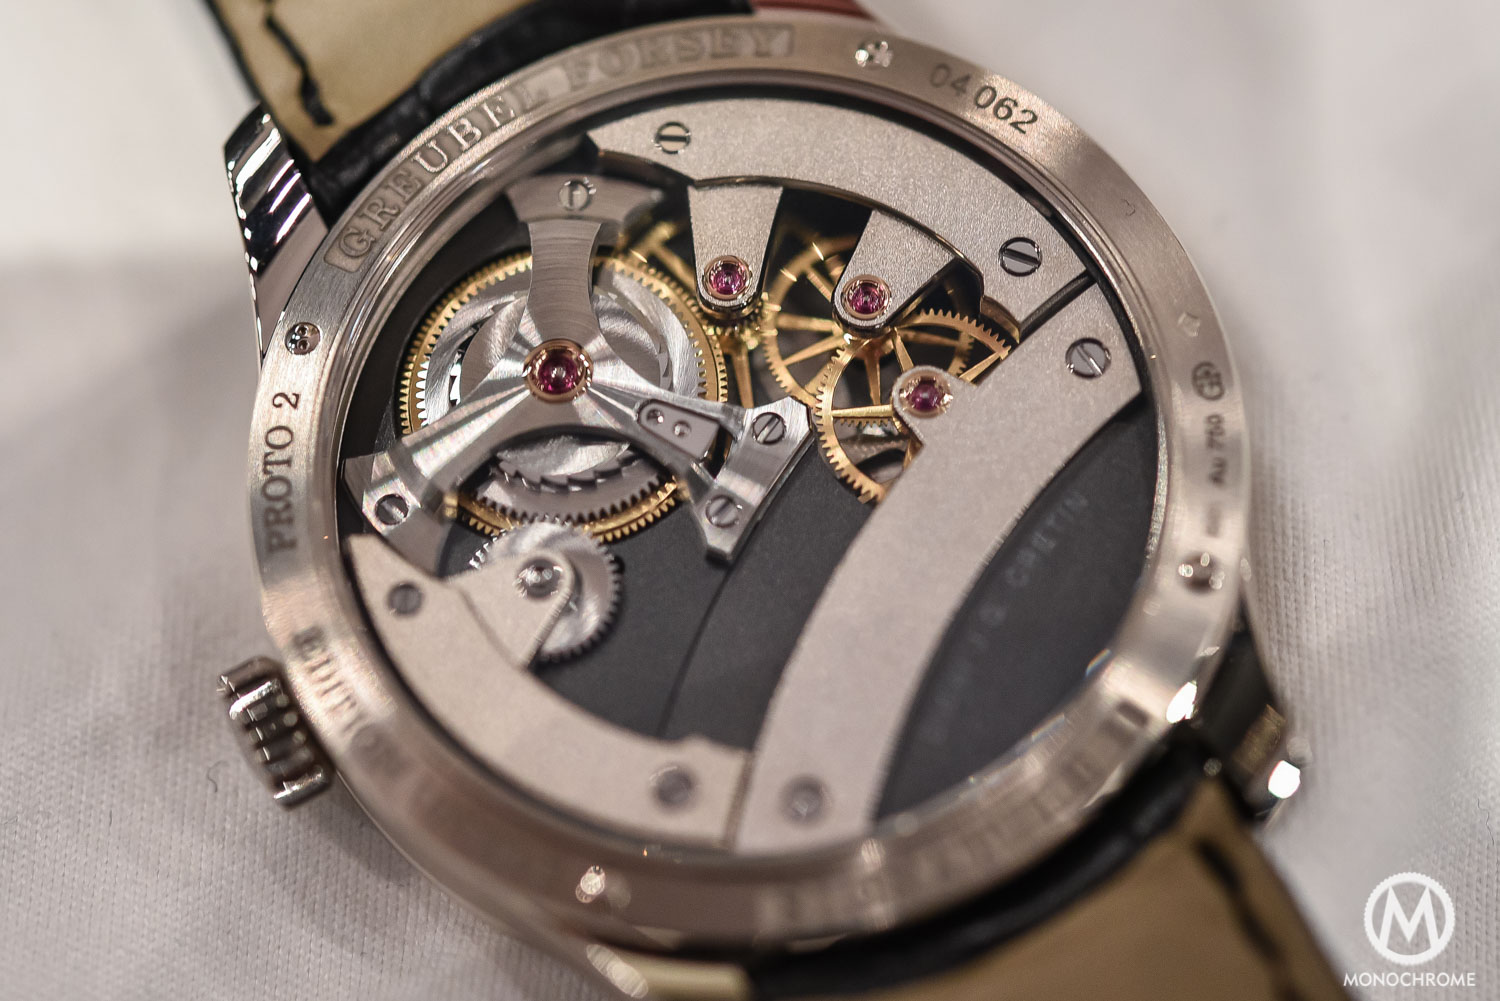 Greubel Forsey Signature 1 - Stainless steel entry level - SIHH 2016 - movement